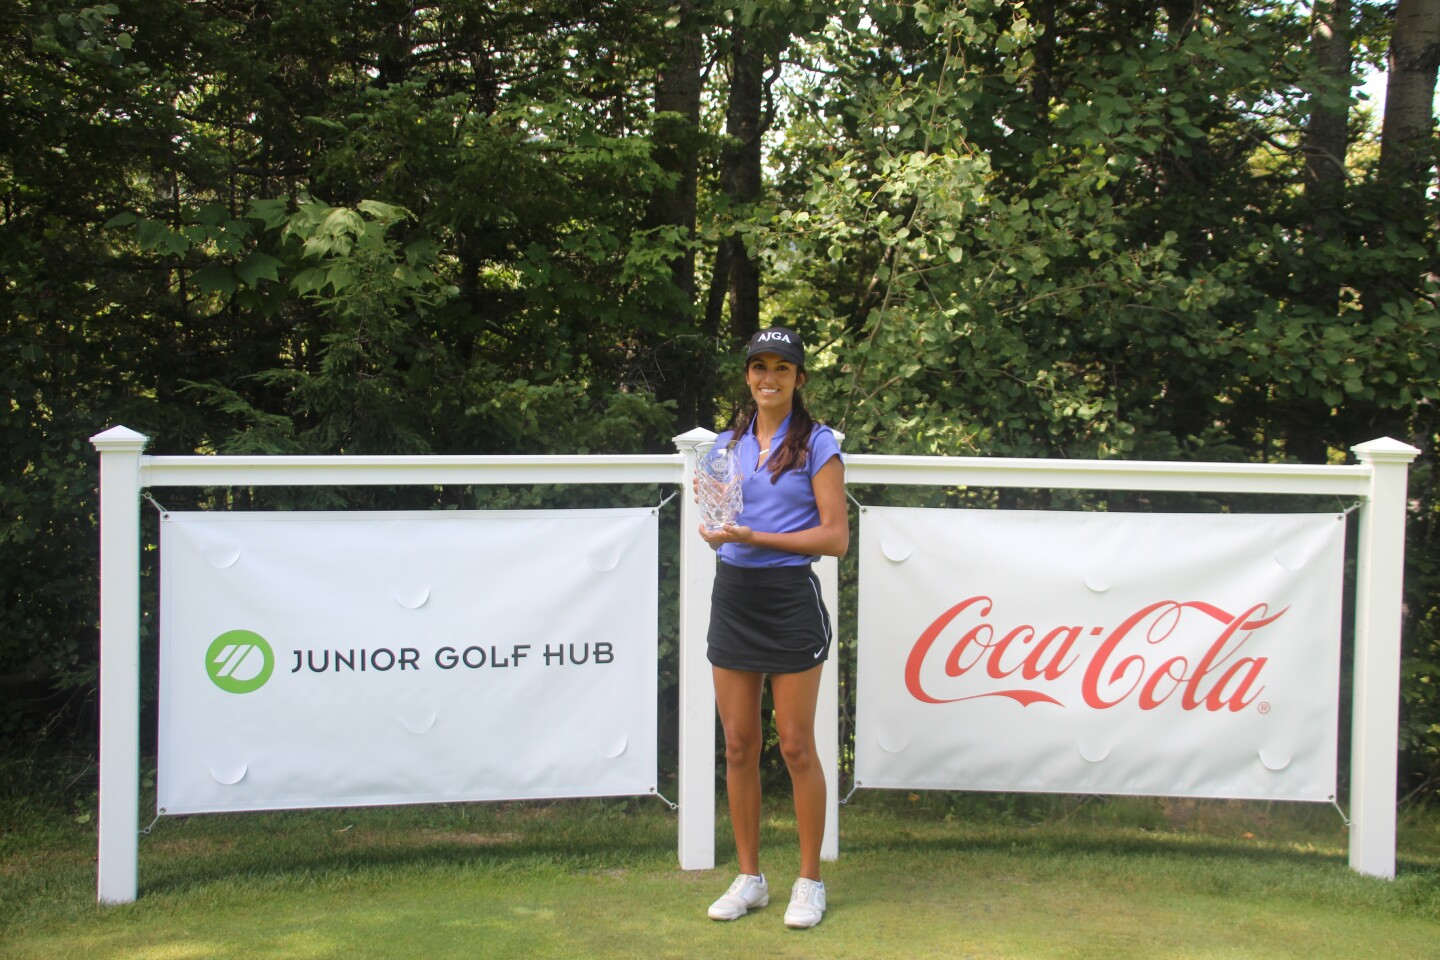 Melena Barrientos with trophy in front of Junior Golf Hub and CocaCola Sign - 2020 - Coca-Cola Junior Championship at Sugarloaf presented by Junior Golf Hub.JPG